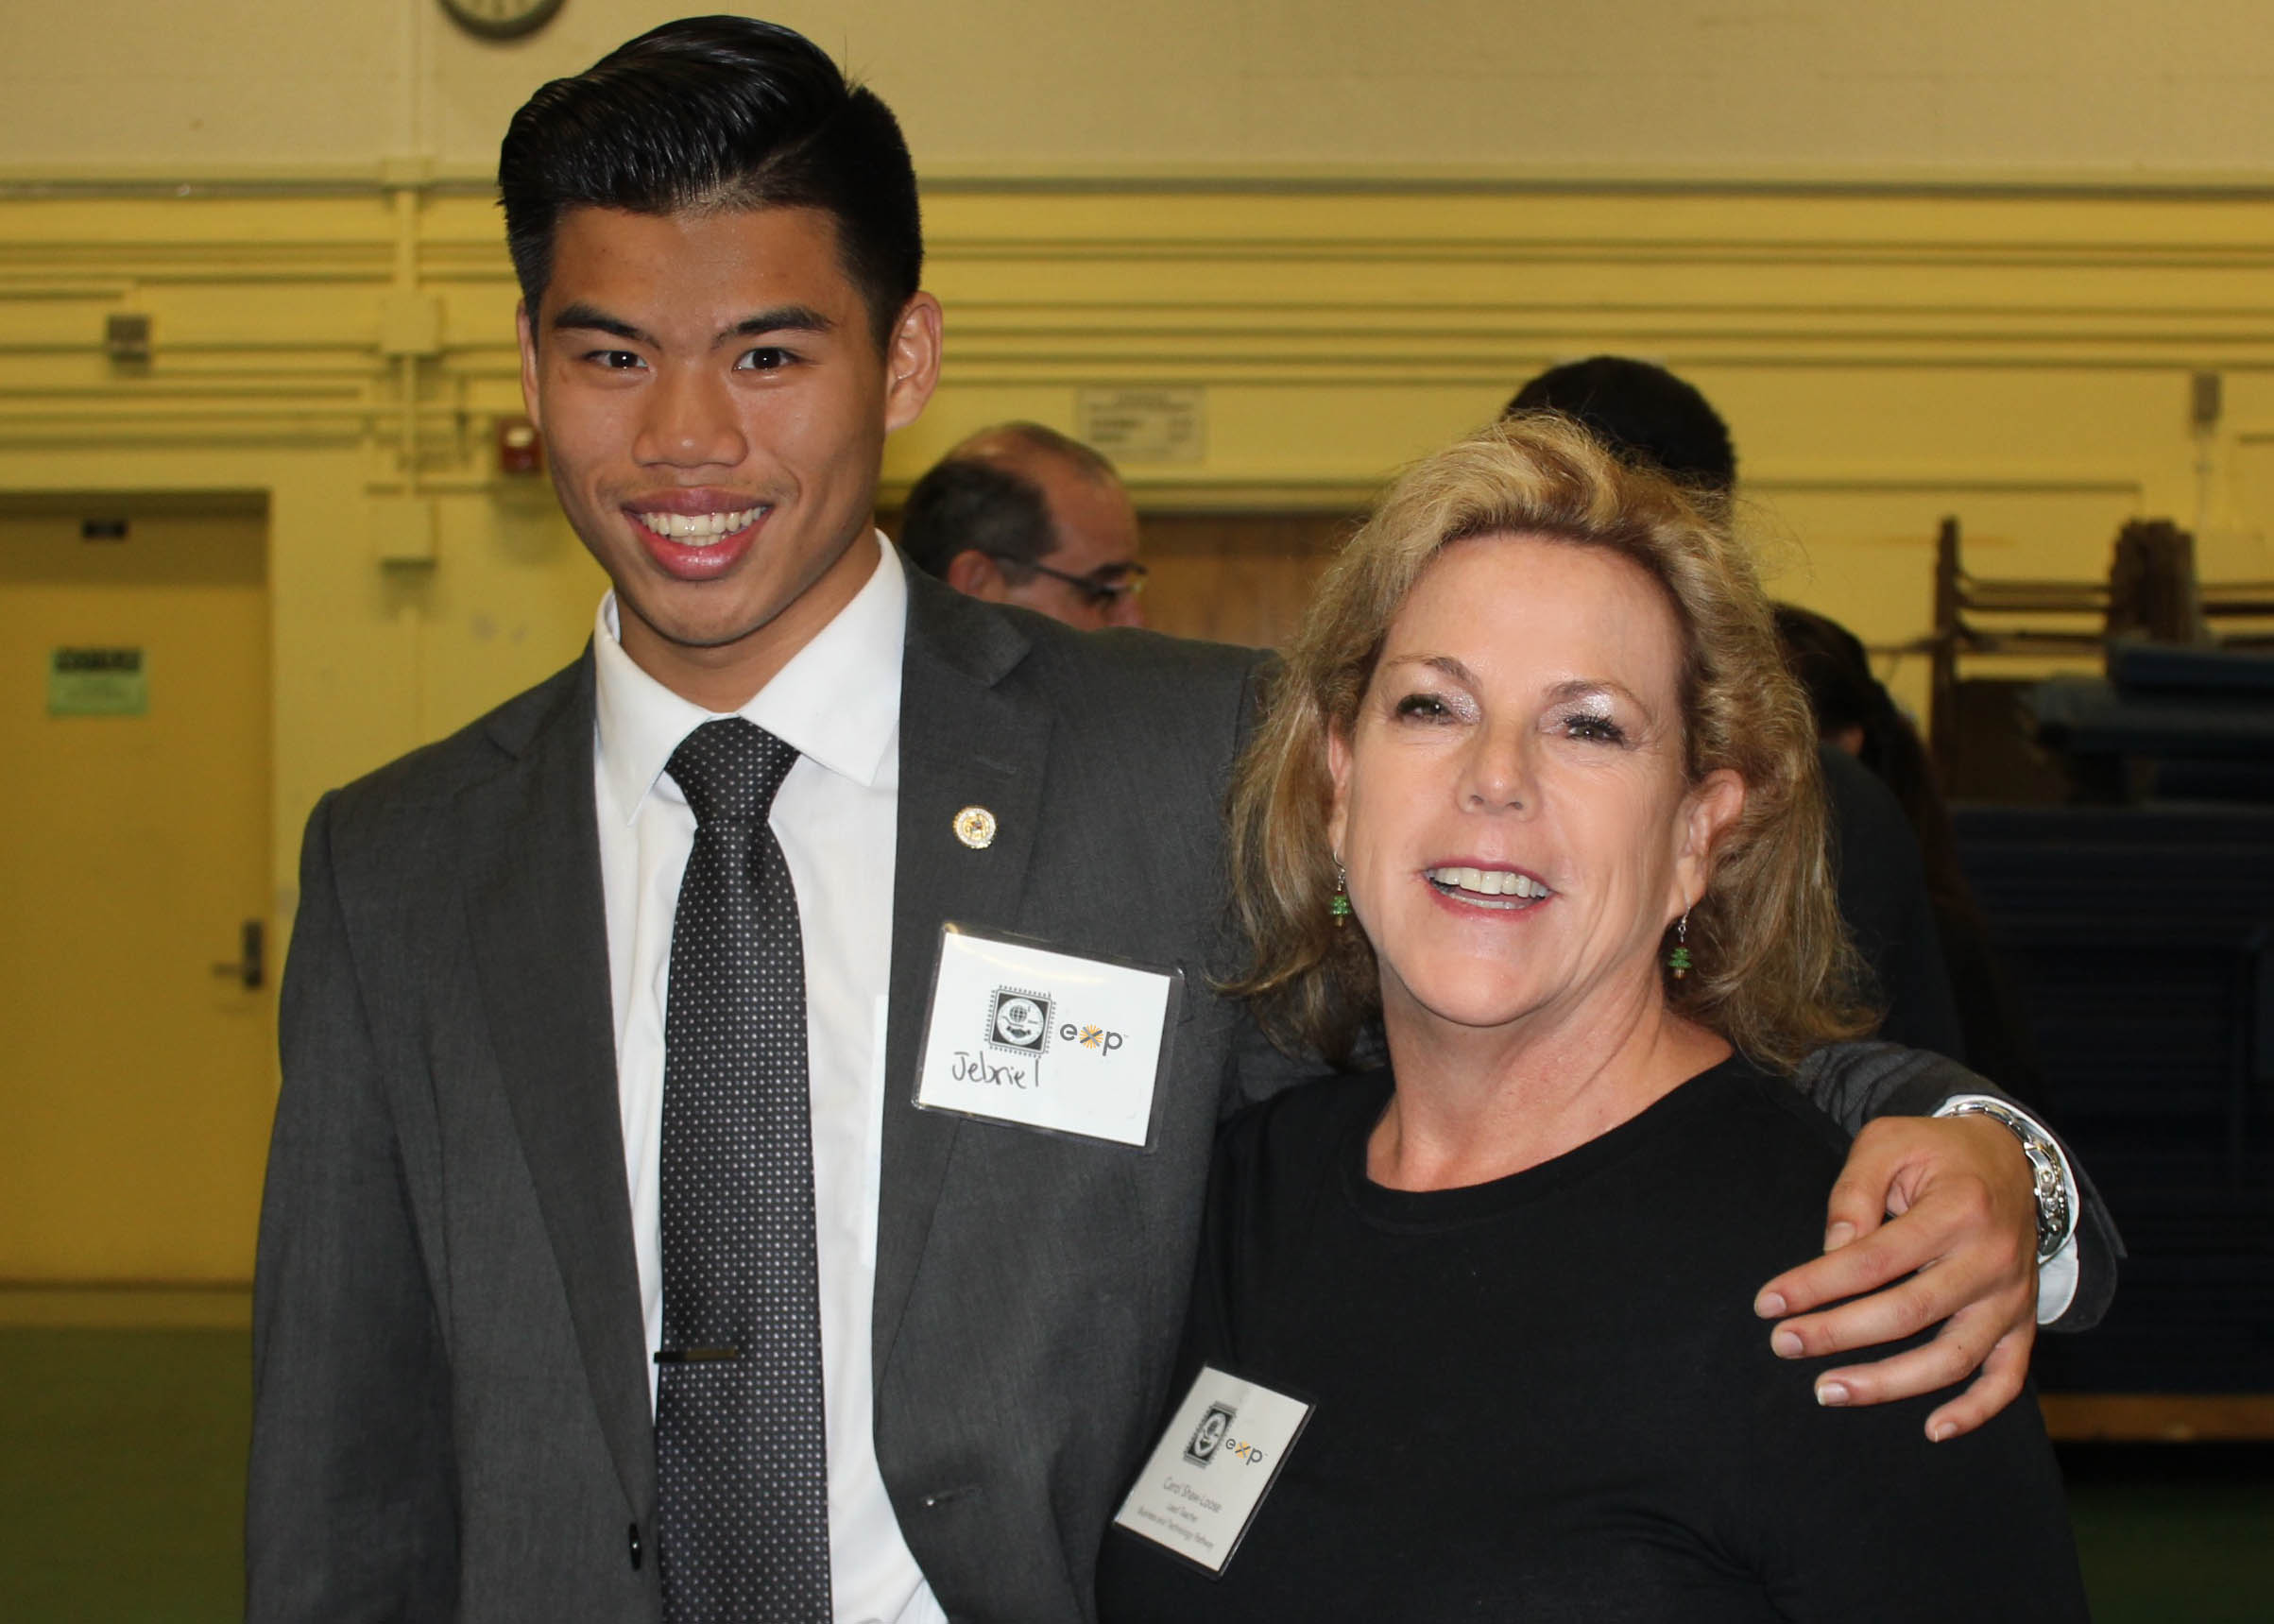 EXP supports us every step of the way with hands-on learning opportunities like job shadow field trips, the internship program, and the GPS Your Future event. It is very rewarding to watch these young adults blossom in a business environment. - - Carol Shaw, lead teacher, Business, Entrepreneurship and Technology Academy (BETA), Narbonne High School